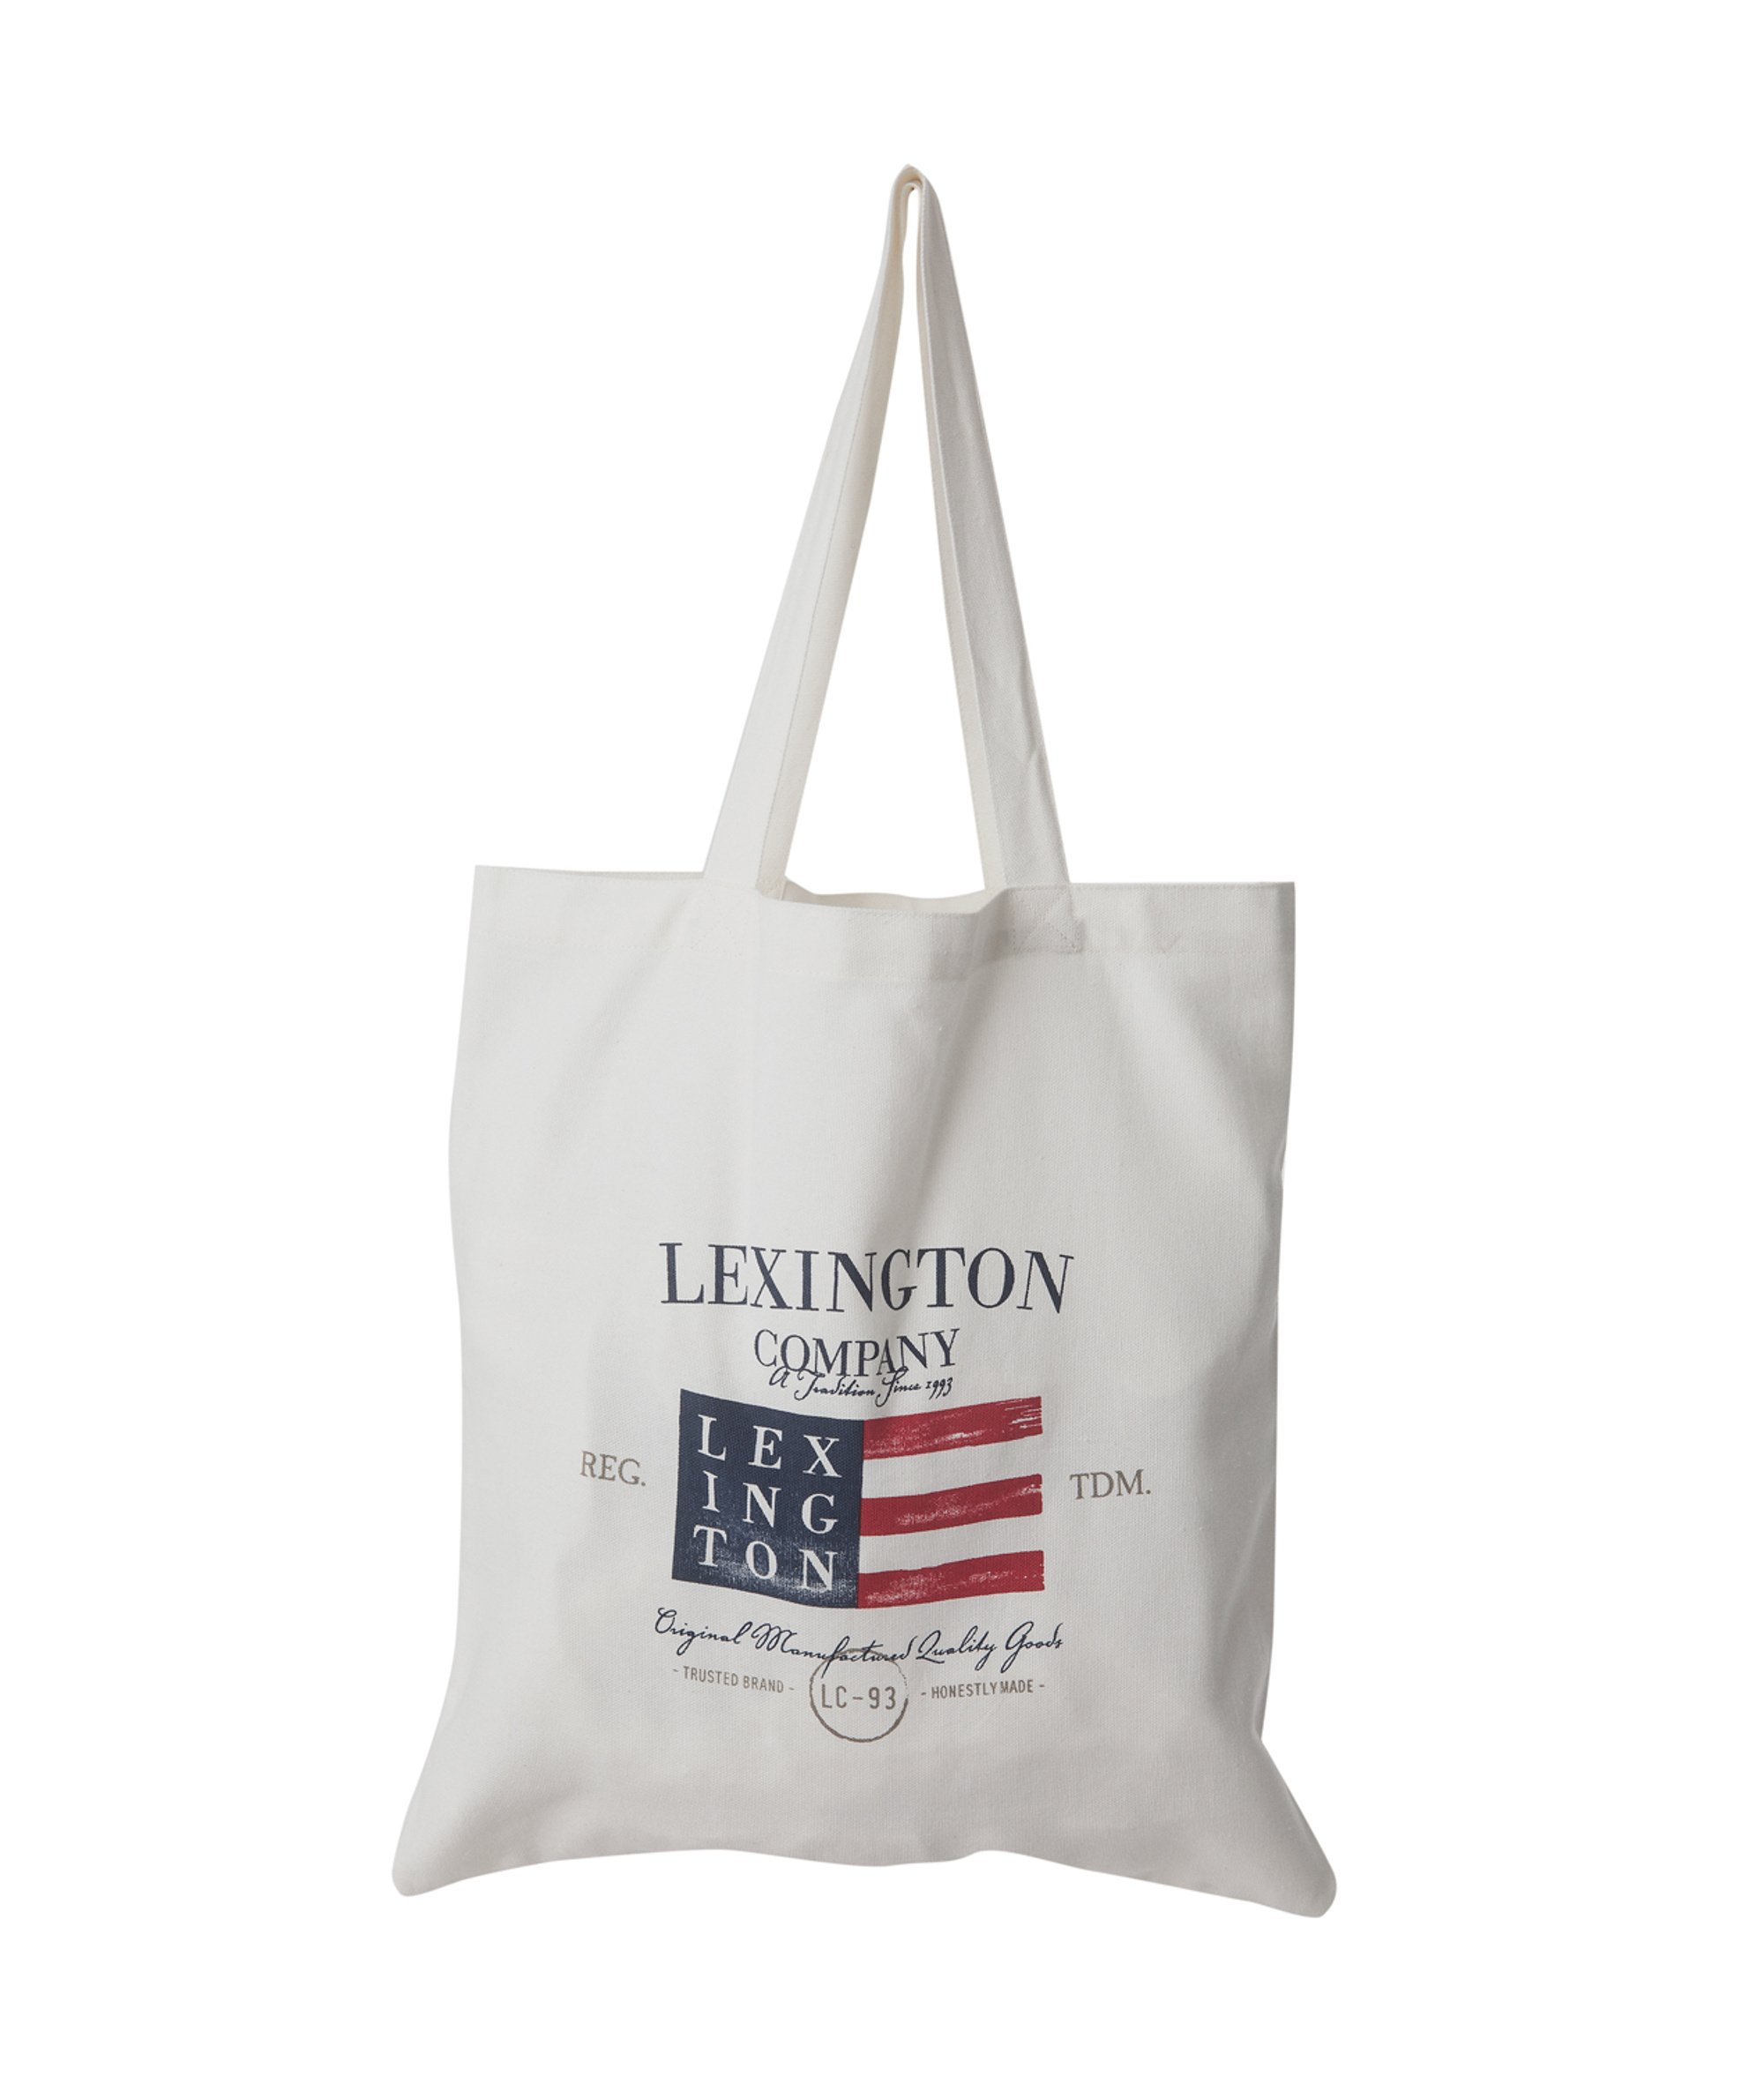 Lexington Tote Bag